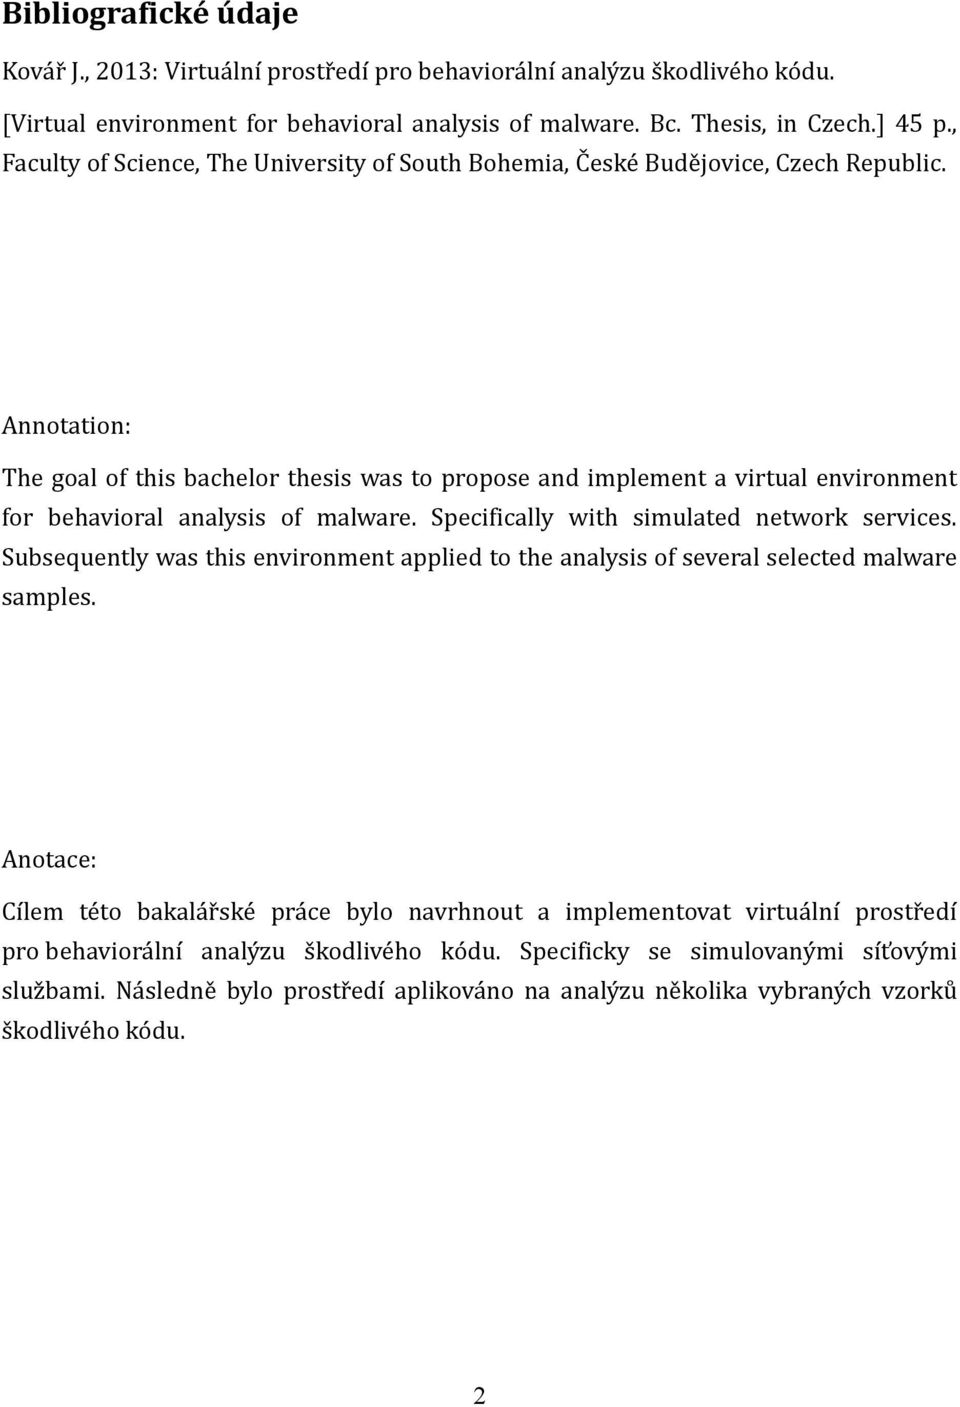 Annotation: The goal of this bachelor thesis was to propose and implement a virtual environment for behavioral analysis of malware. Specifically with simulated network services.